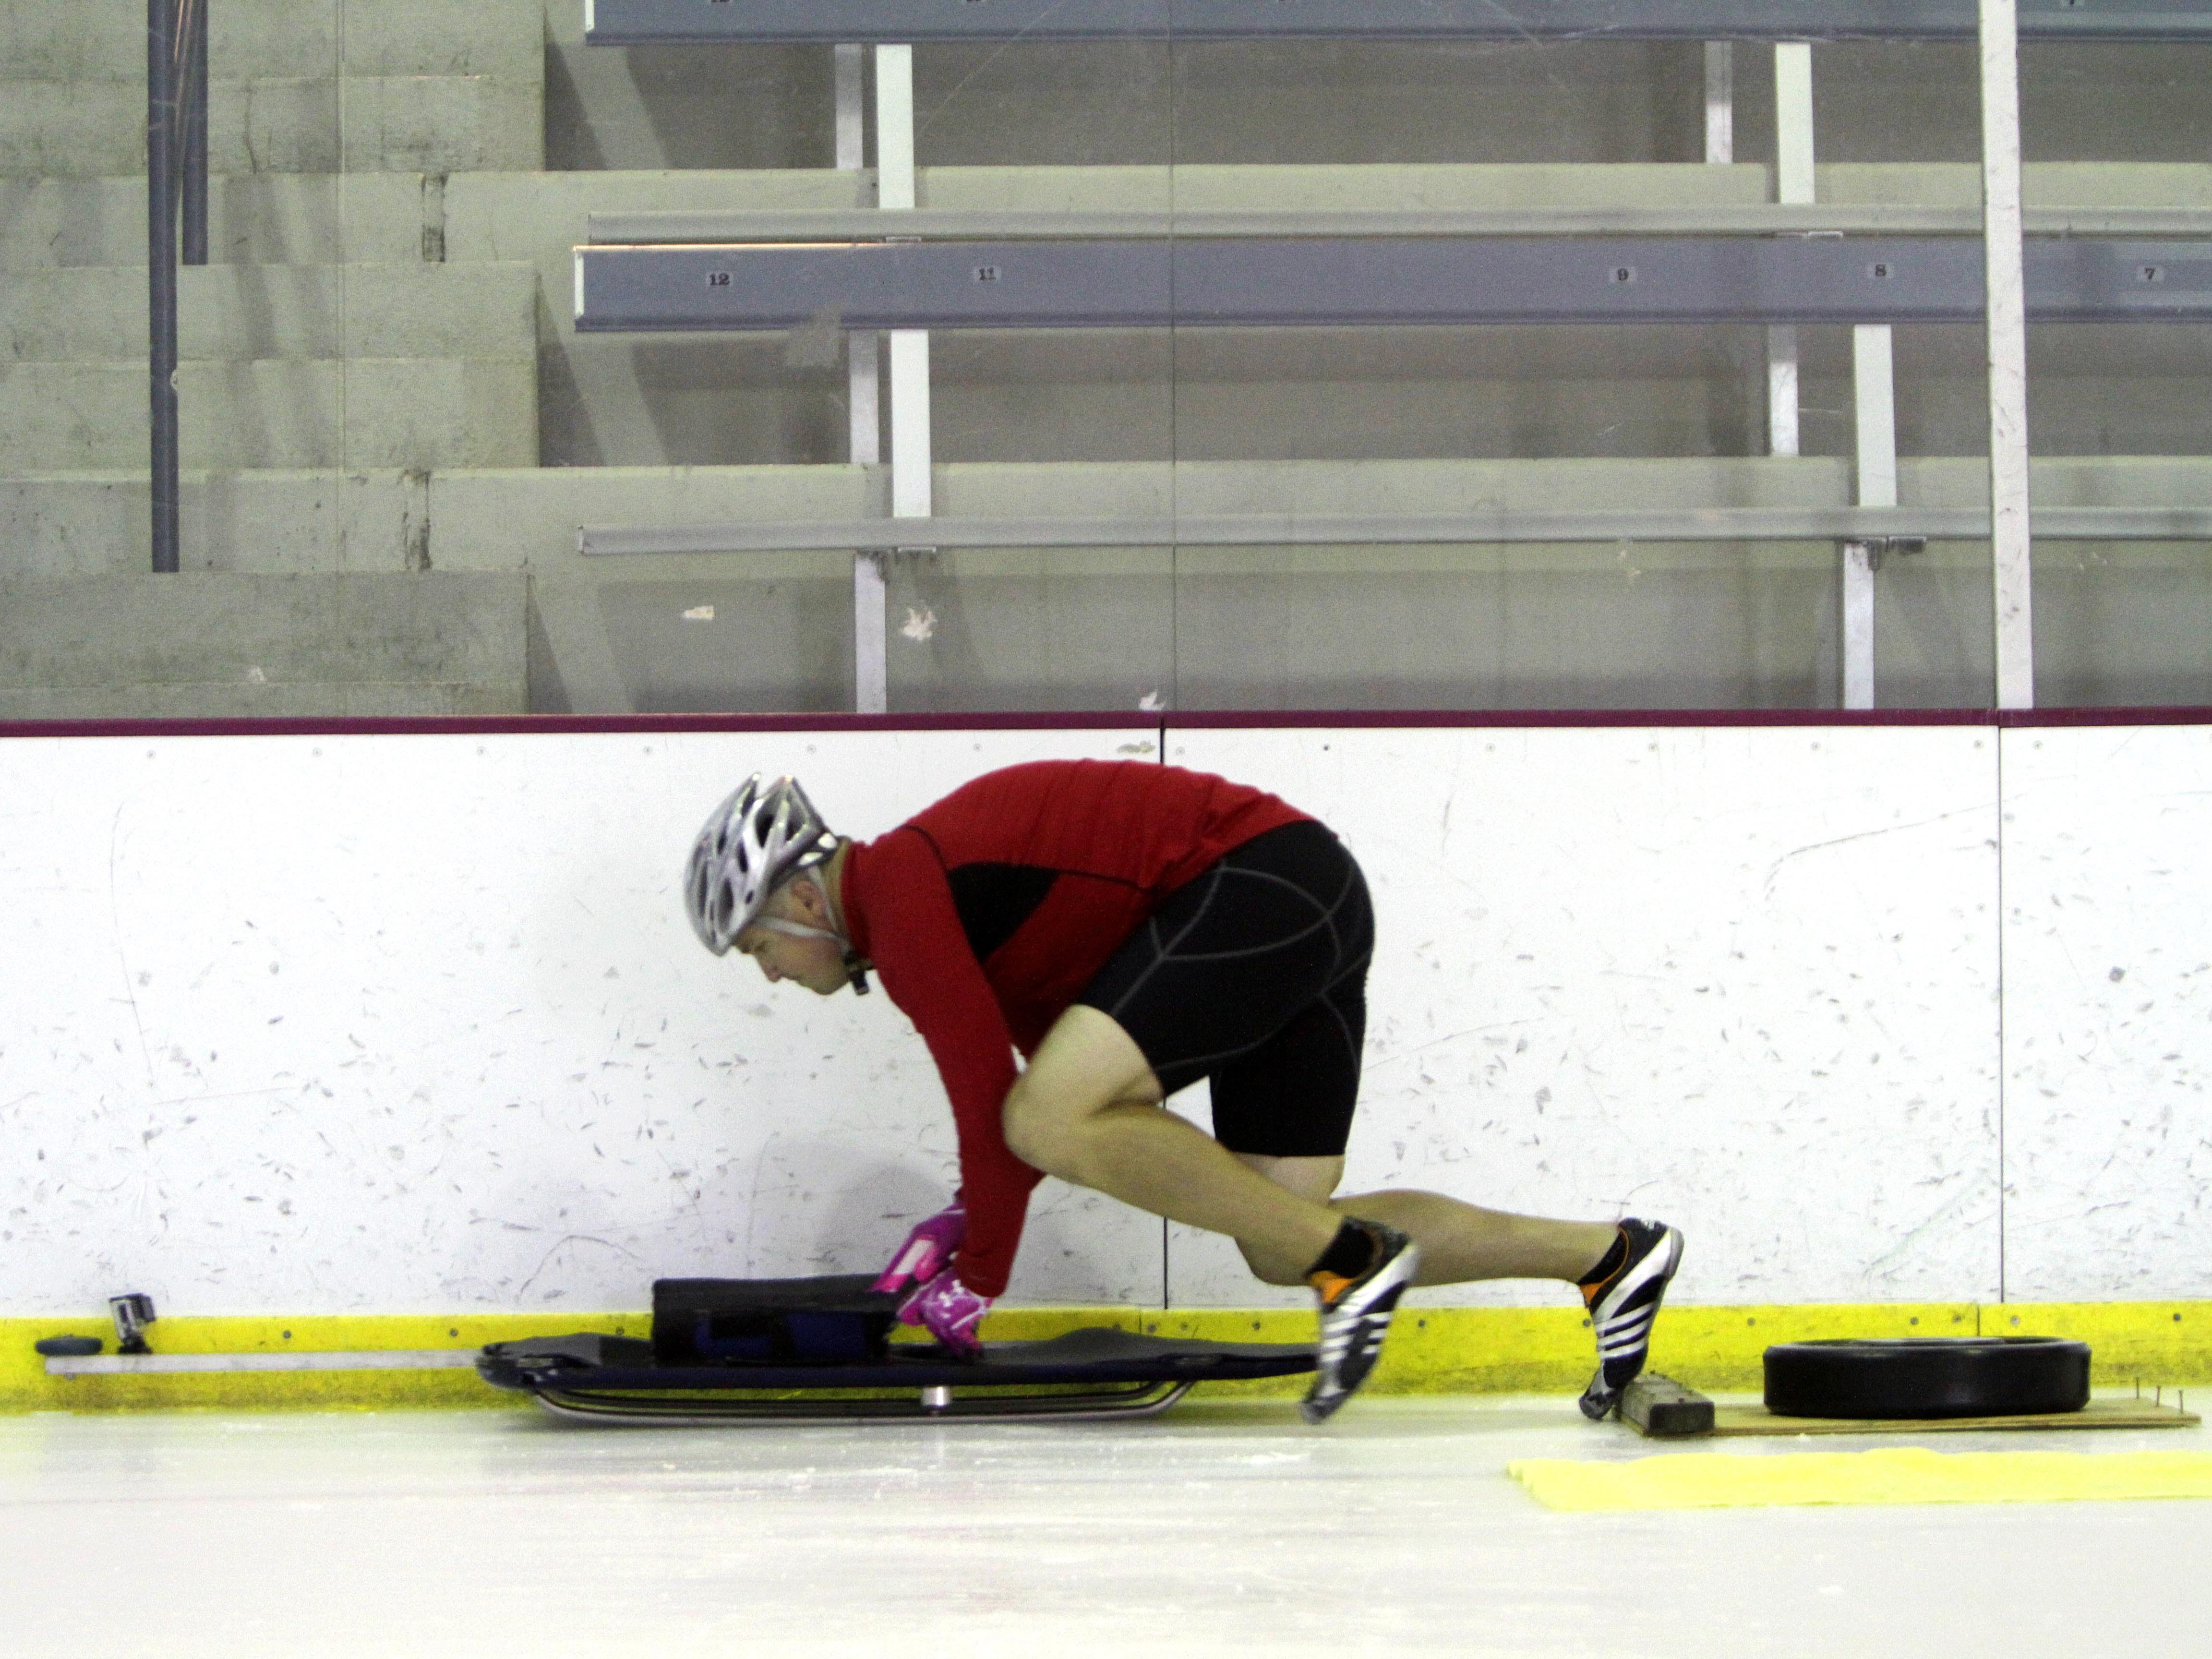 Greg West, a Rogersville native, trains for the Olympics in the skeleton at the Mediacom Ice Park on Tuesday, July 30, 2013.